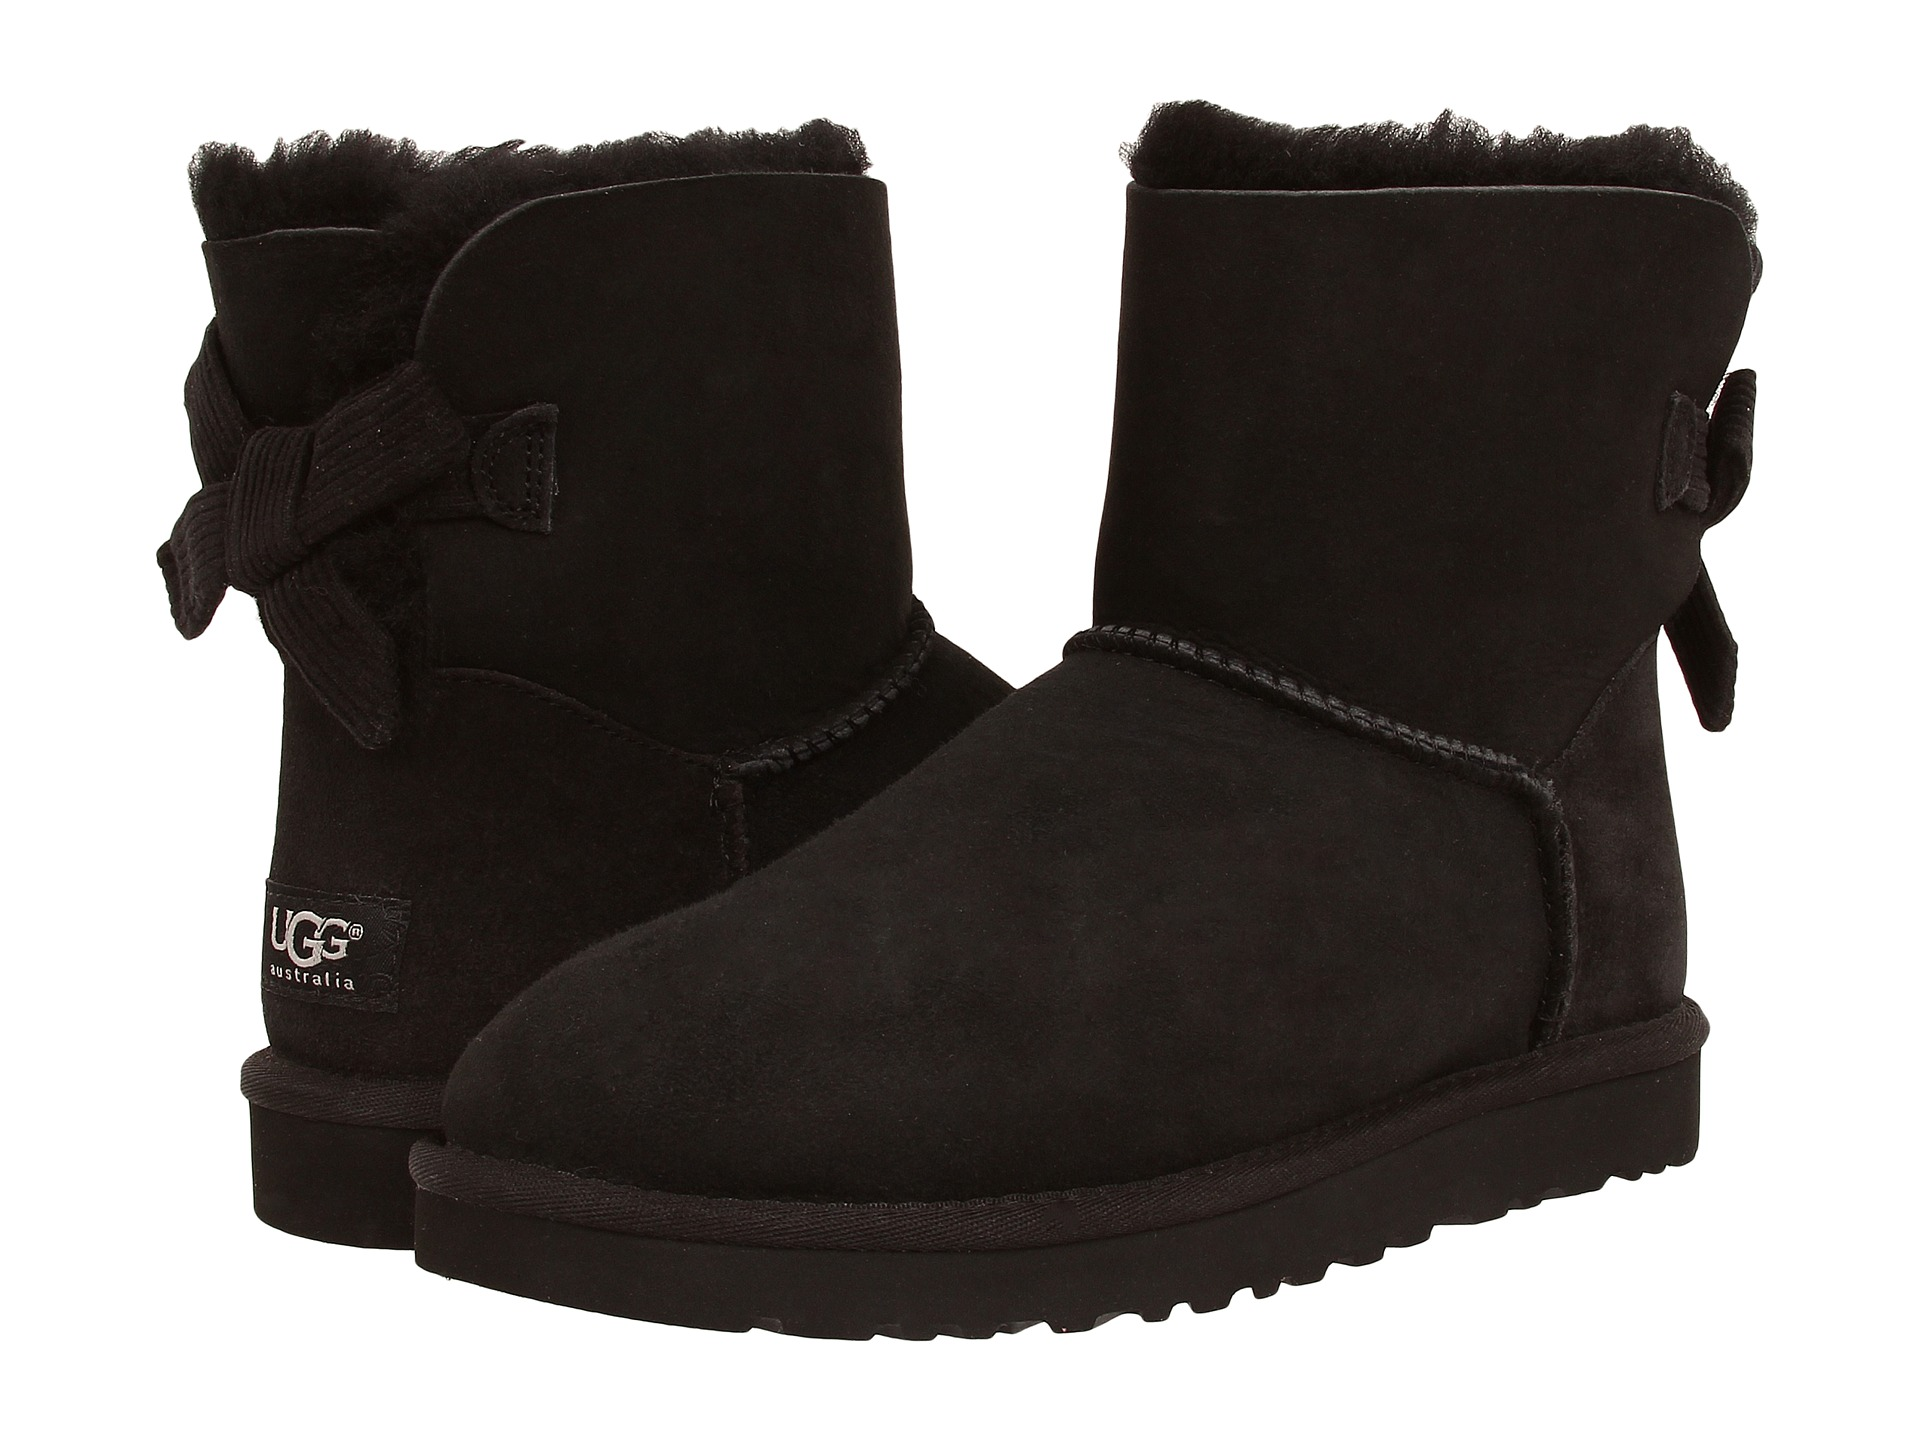 ugg mini bailey bow corduroy black shipped free at zappos. Black Bedroom Furniture Sets. Home Design Ideas